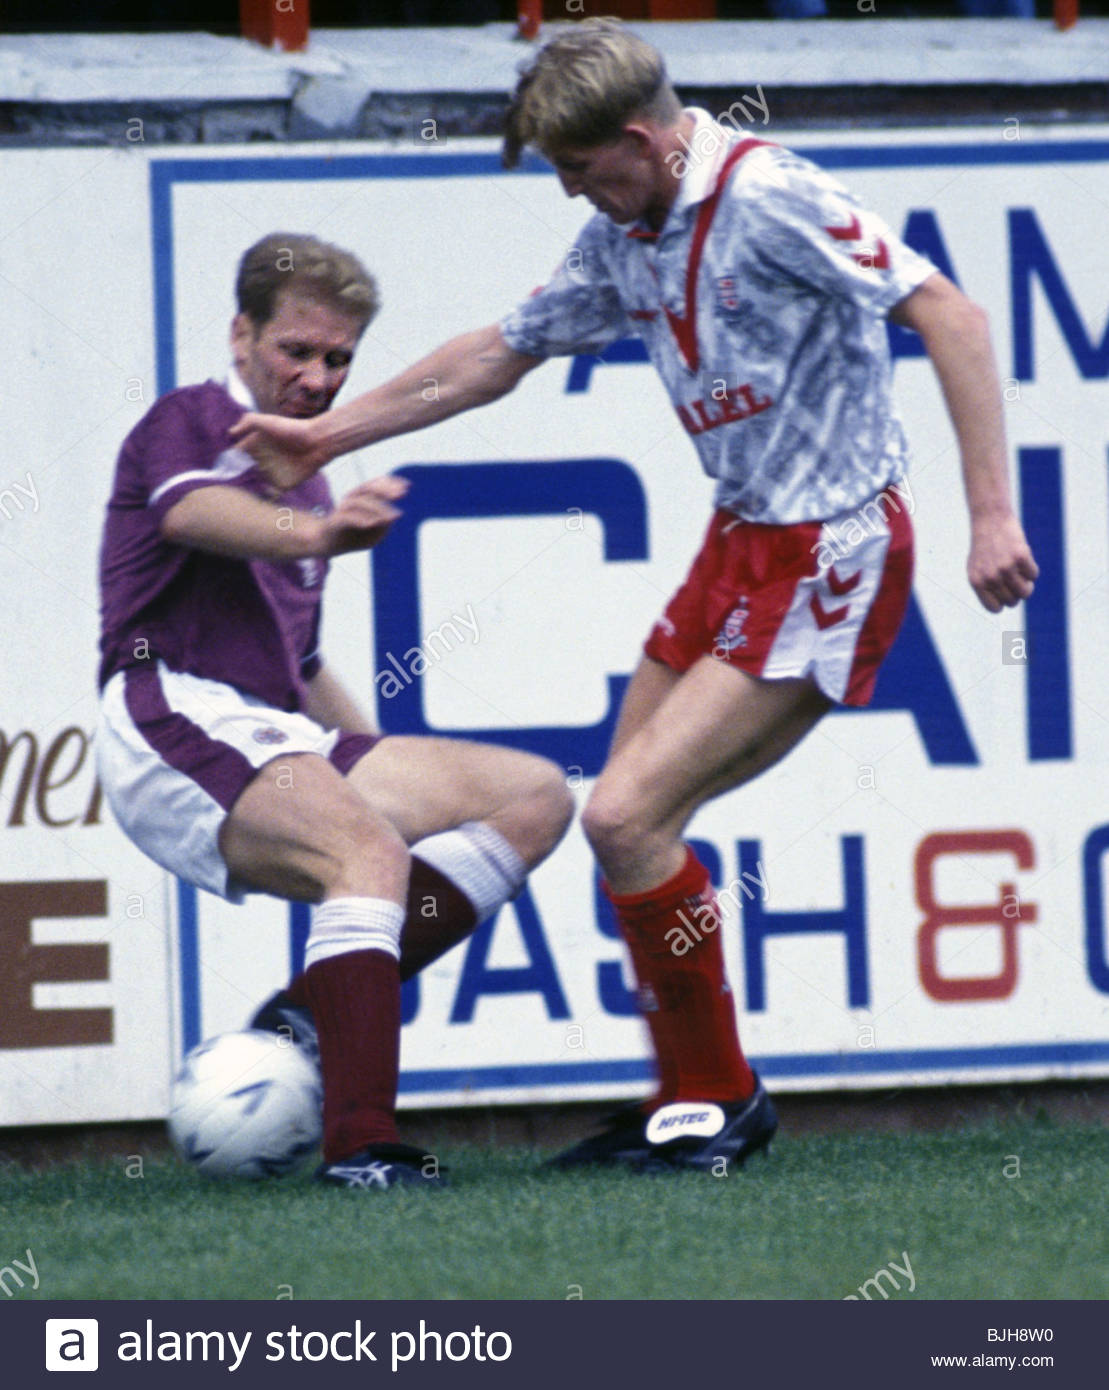 26/09/92 SCOTTISH PREMIER DIVISION AIRDRIE v HEARTS (1-0) BROOMFIELD - AIRDRIE Andy Smith (left) tussles with Hearts - Stock Image